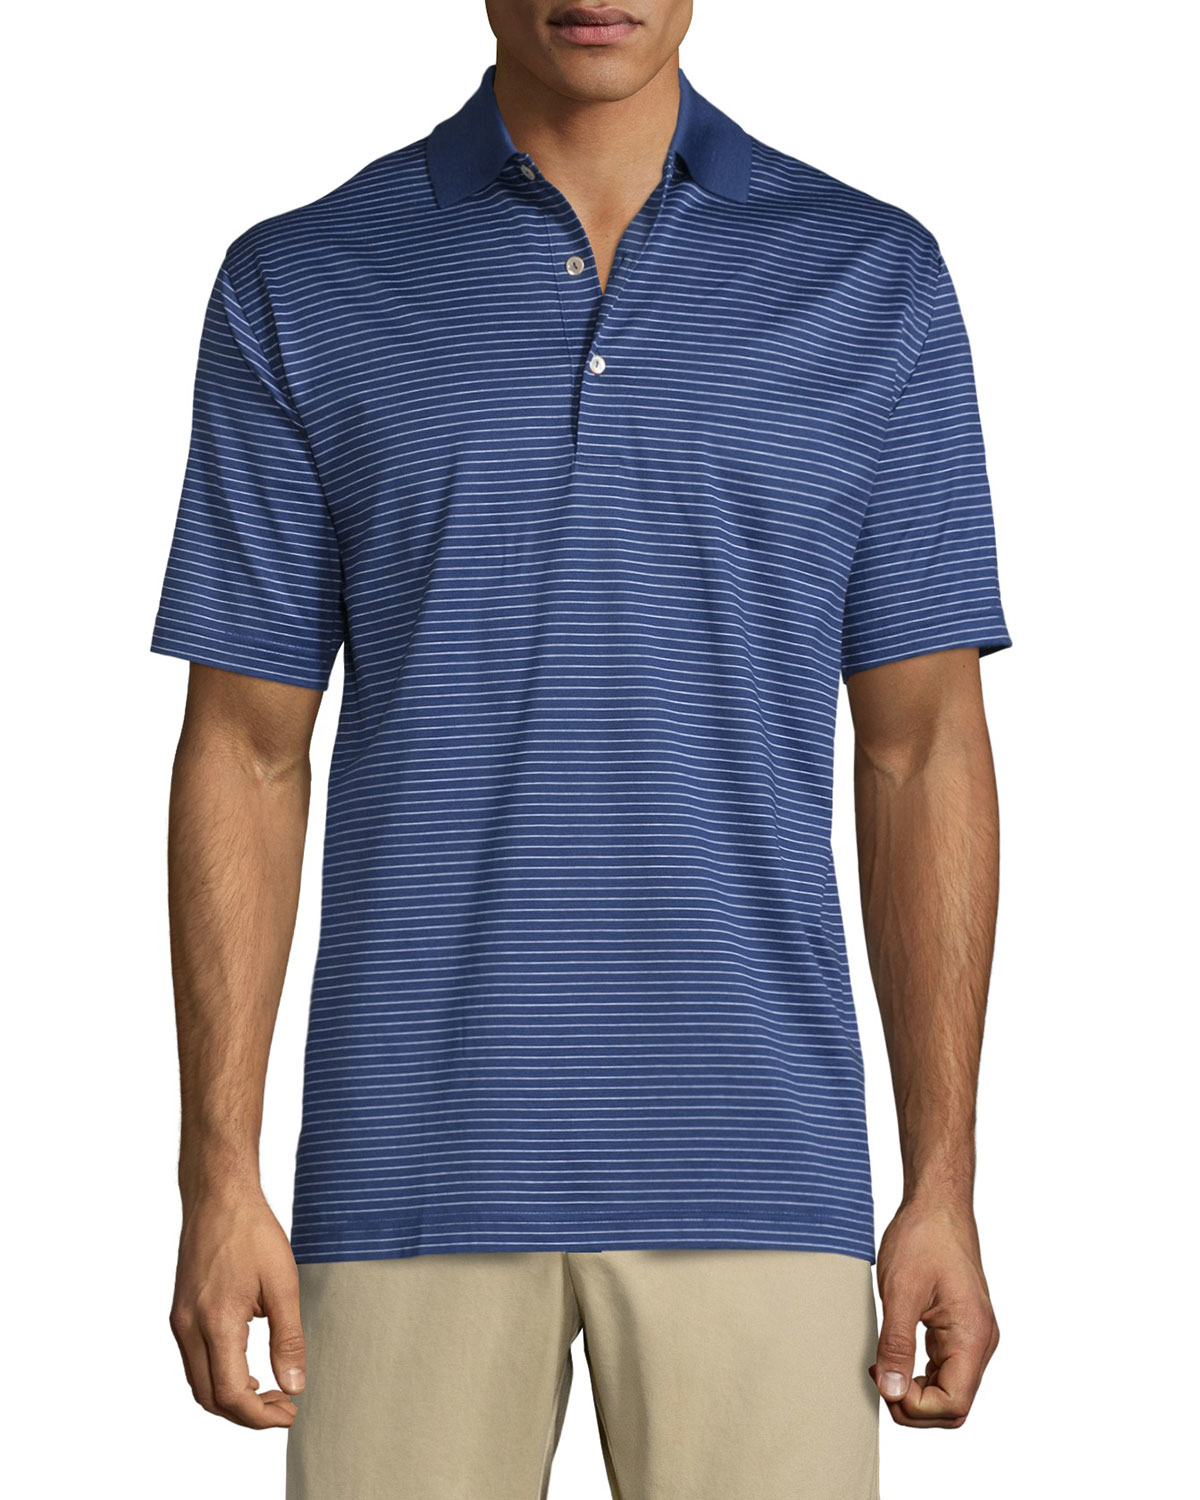 Peter millar subconscious striped short sleeve jersey polo for Peter millar polo shirts